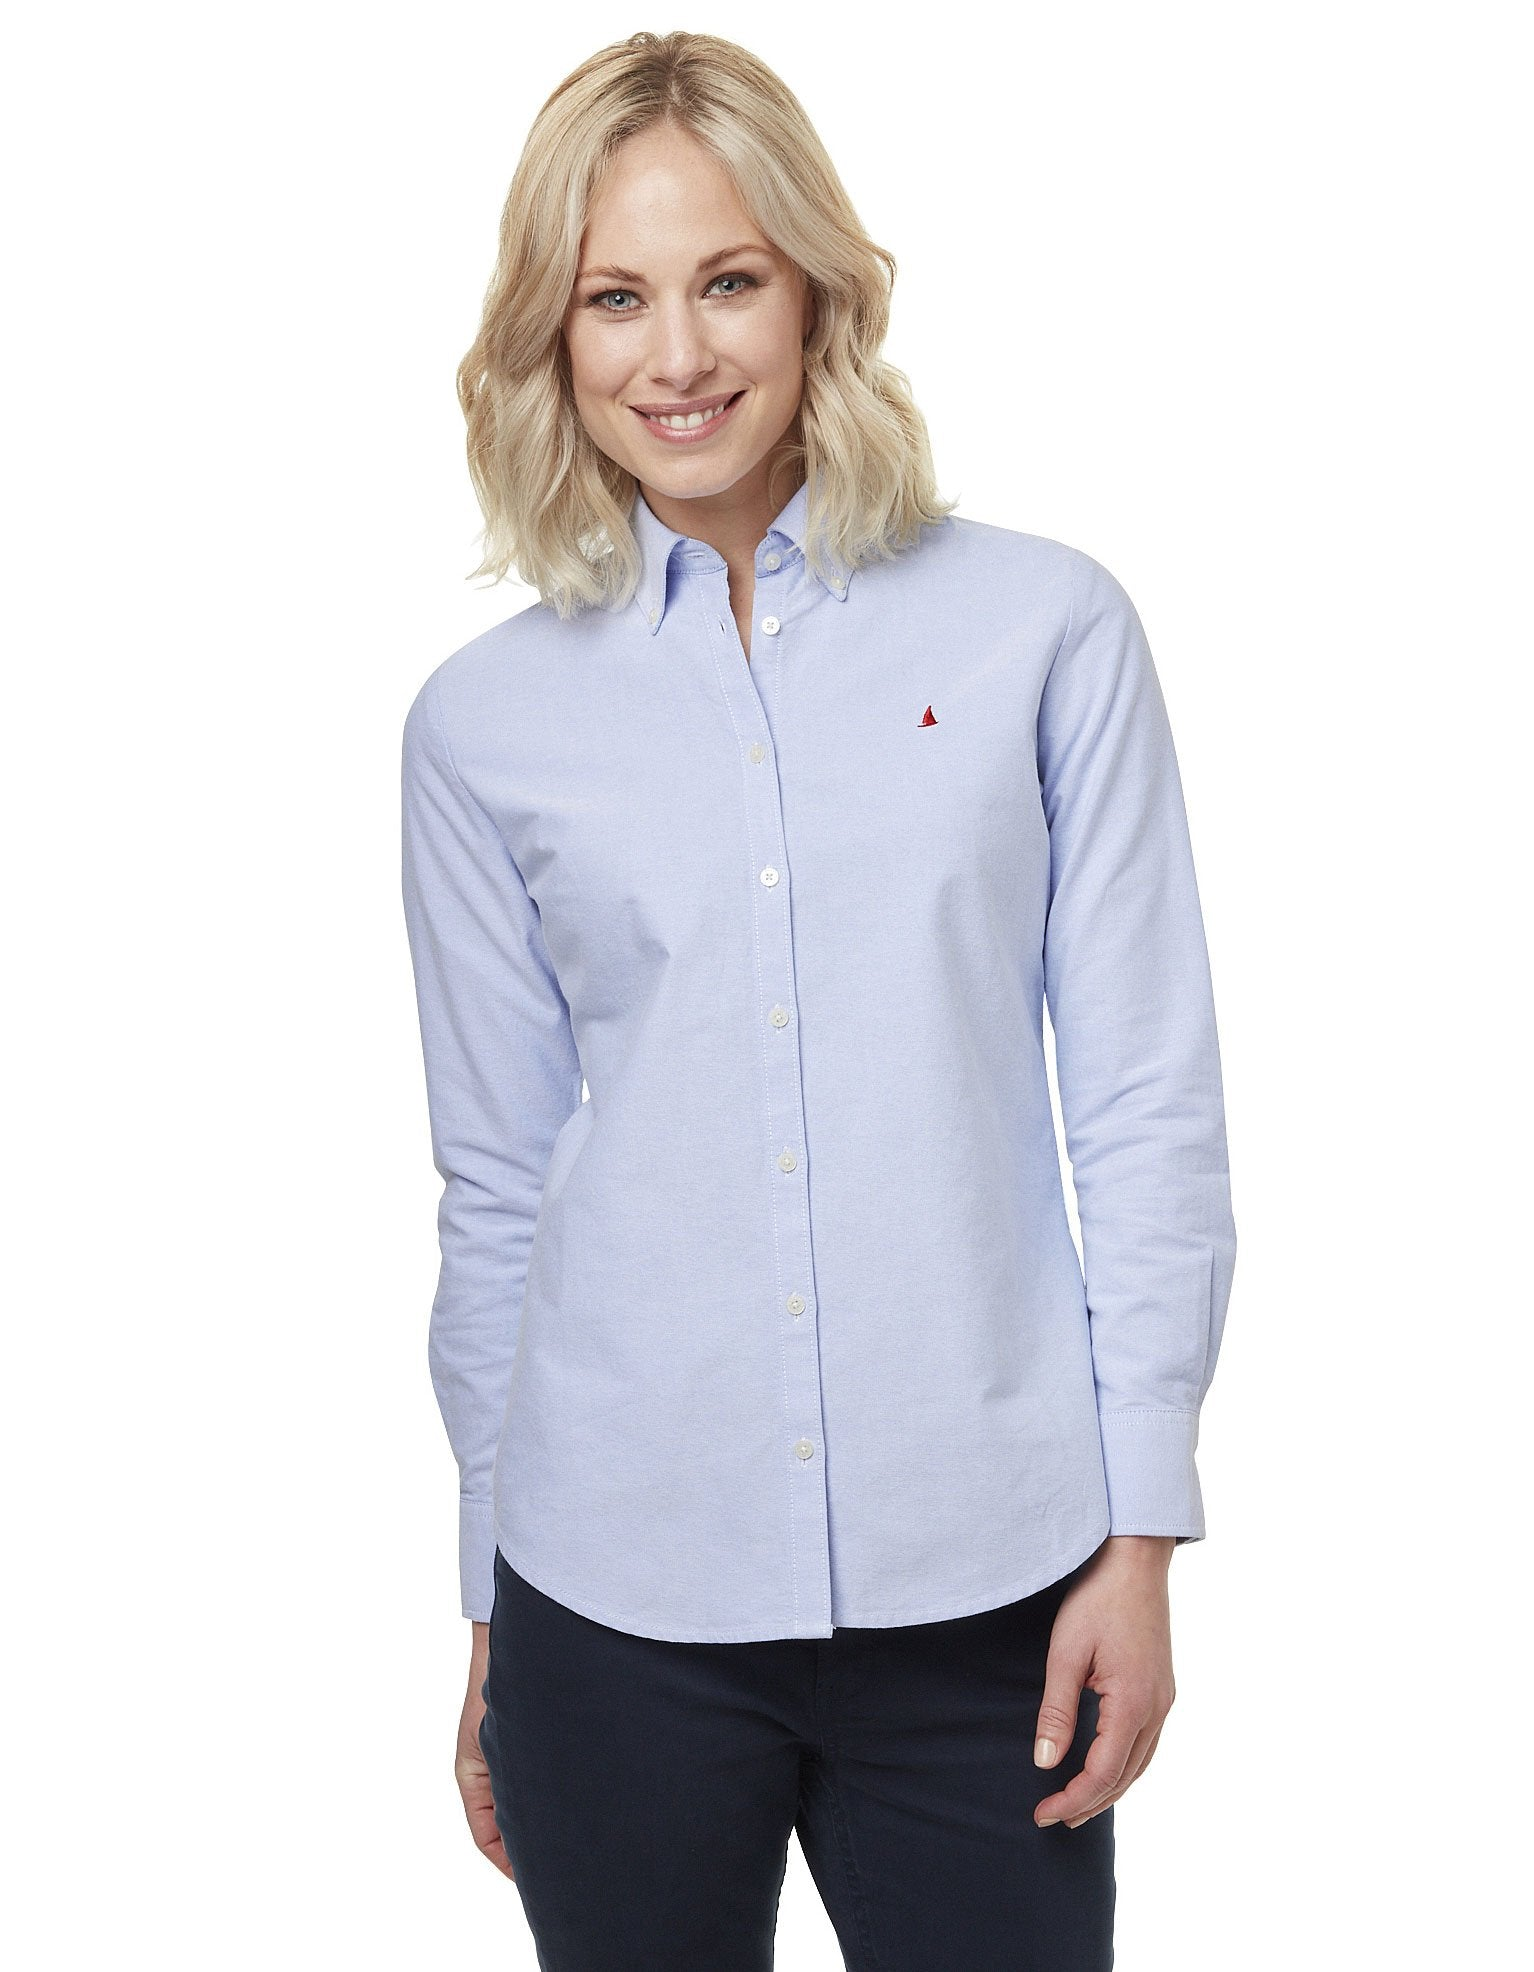 Woman wearing Oxford Cotton Shirt by Musto